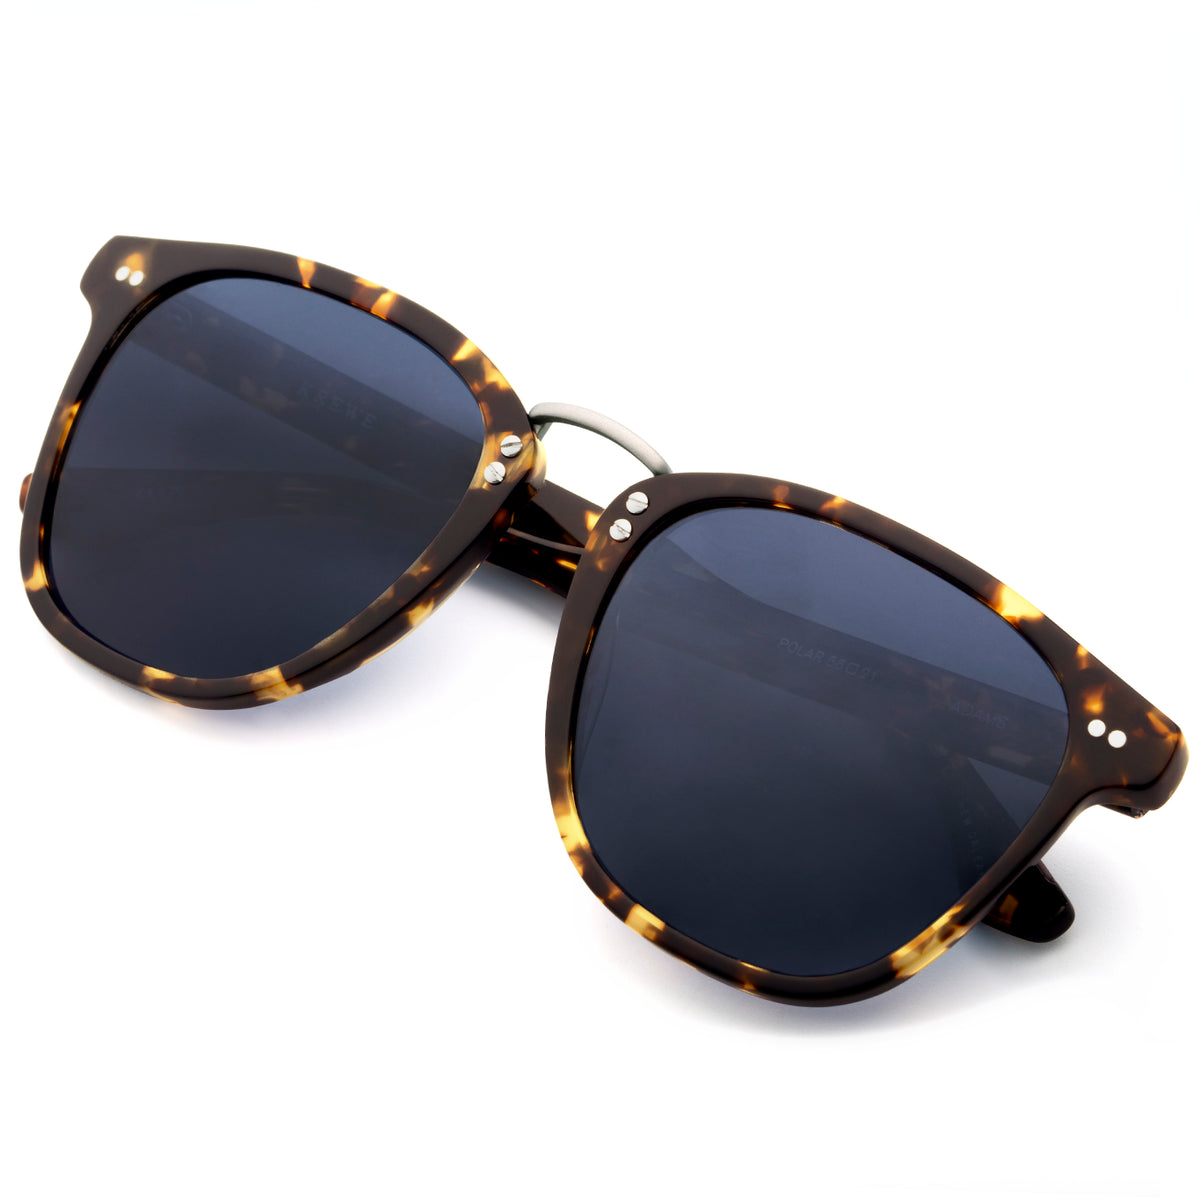 ADAMS | Bengal Polarized - handcrafted acetate eyewear